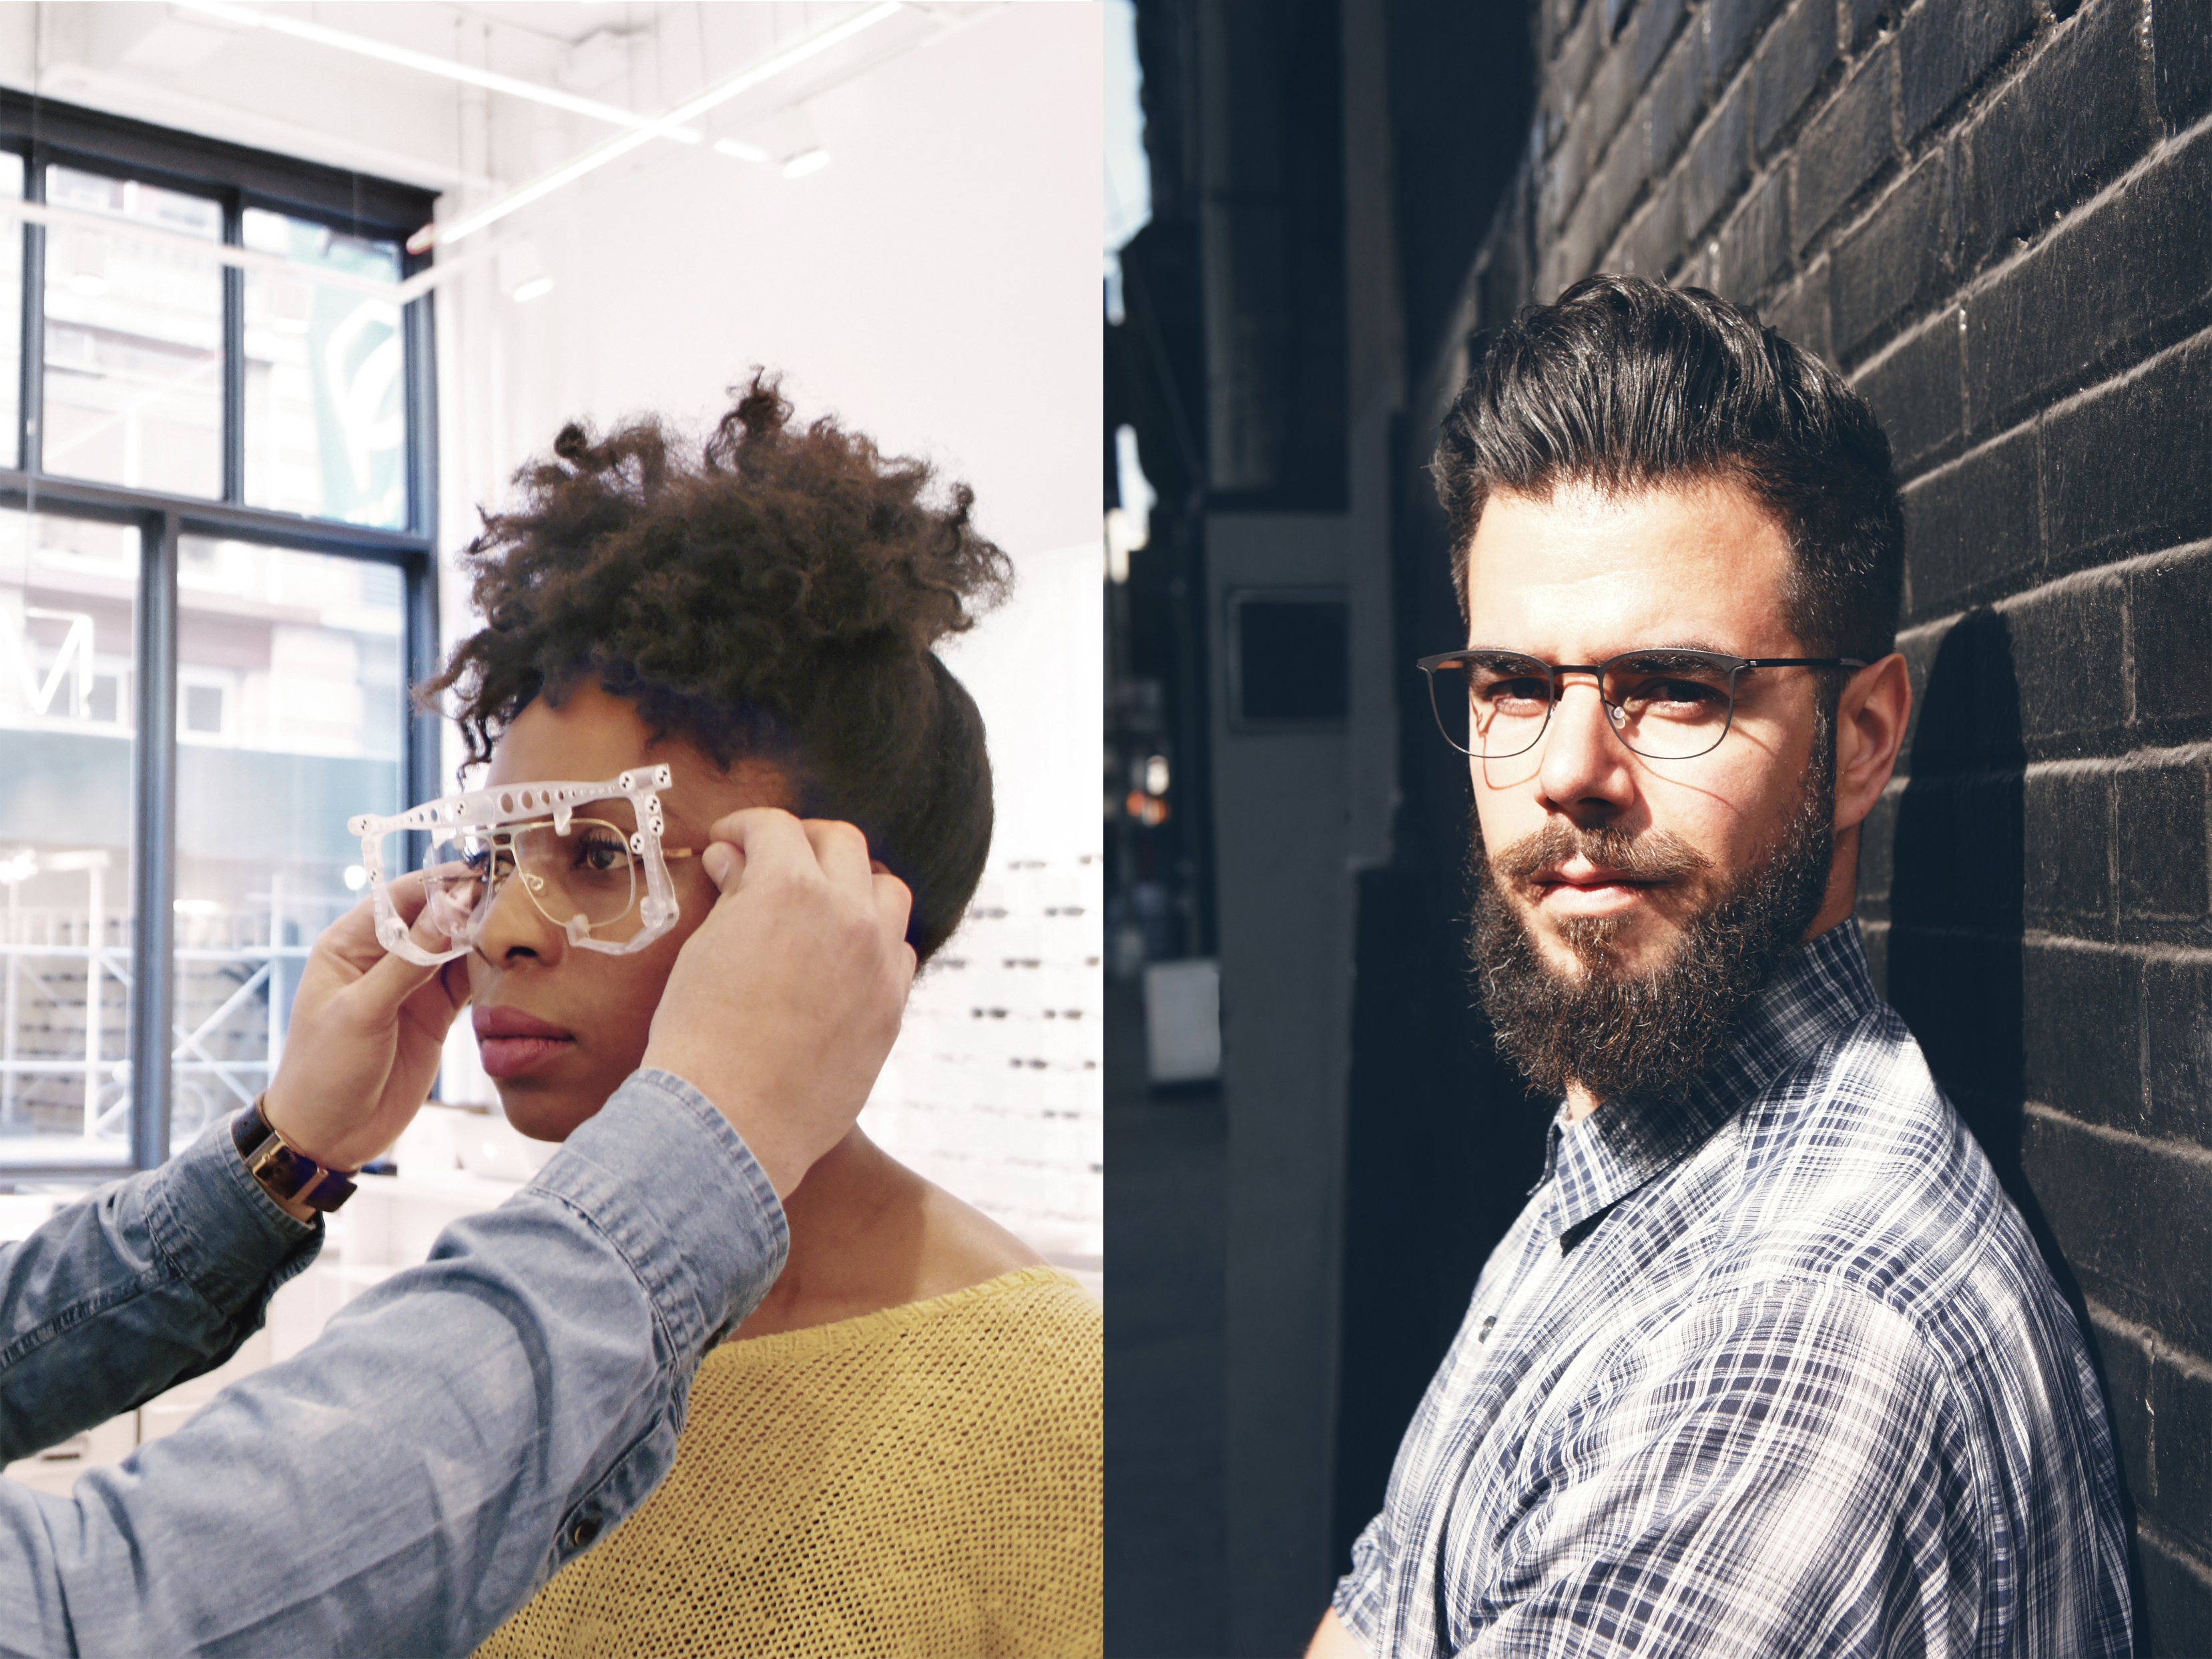 Eye-exams at MYKITA Shop New York using technology from Carl Zeiss Vision